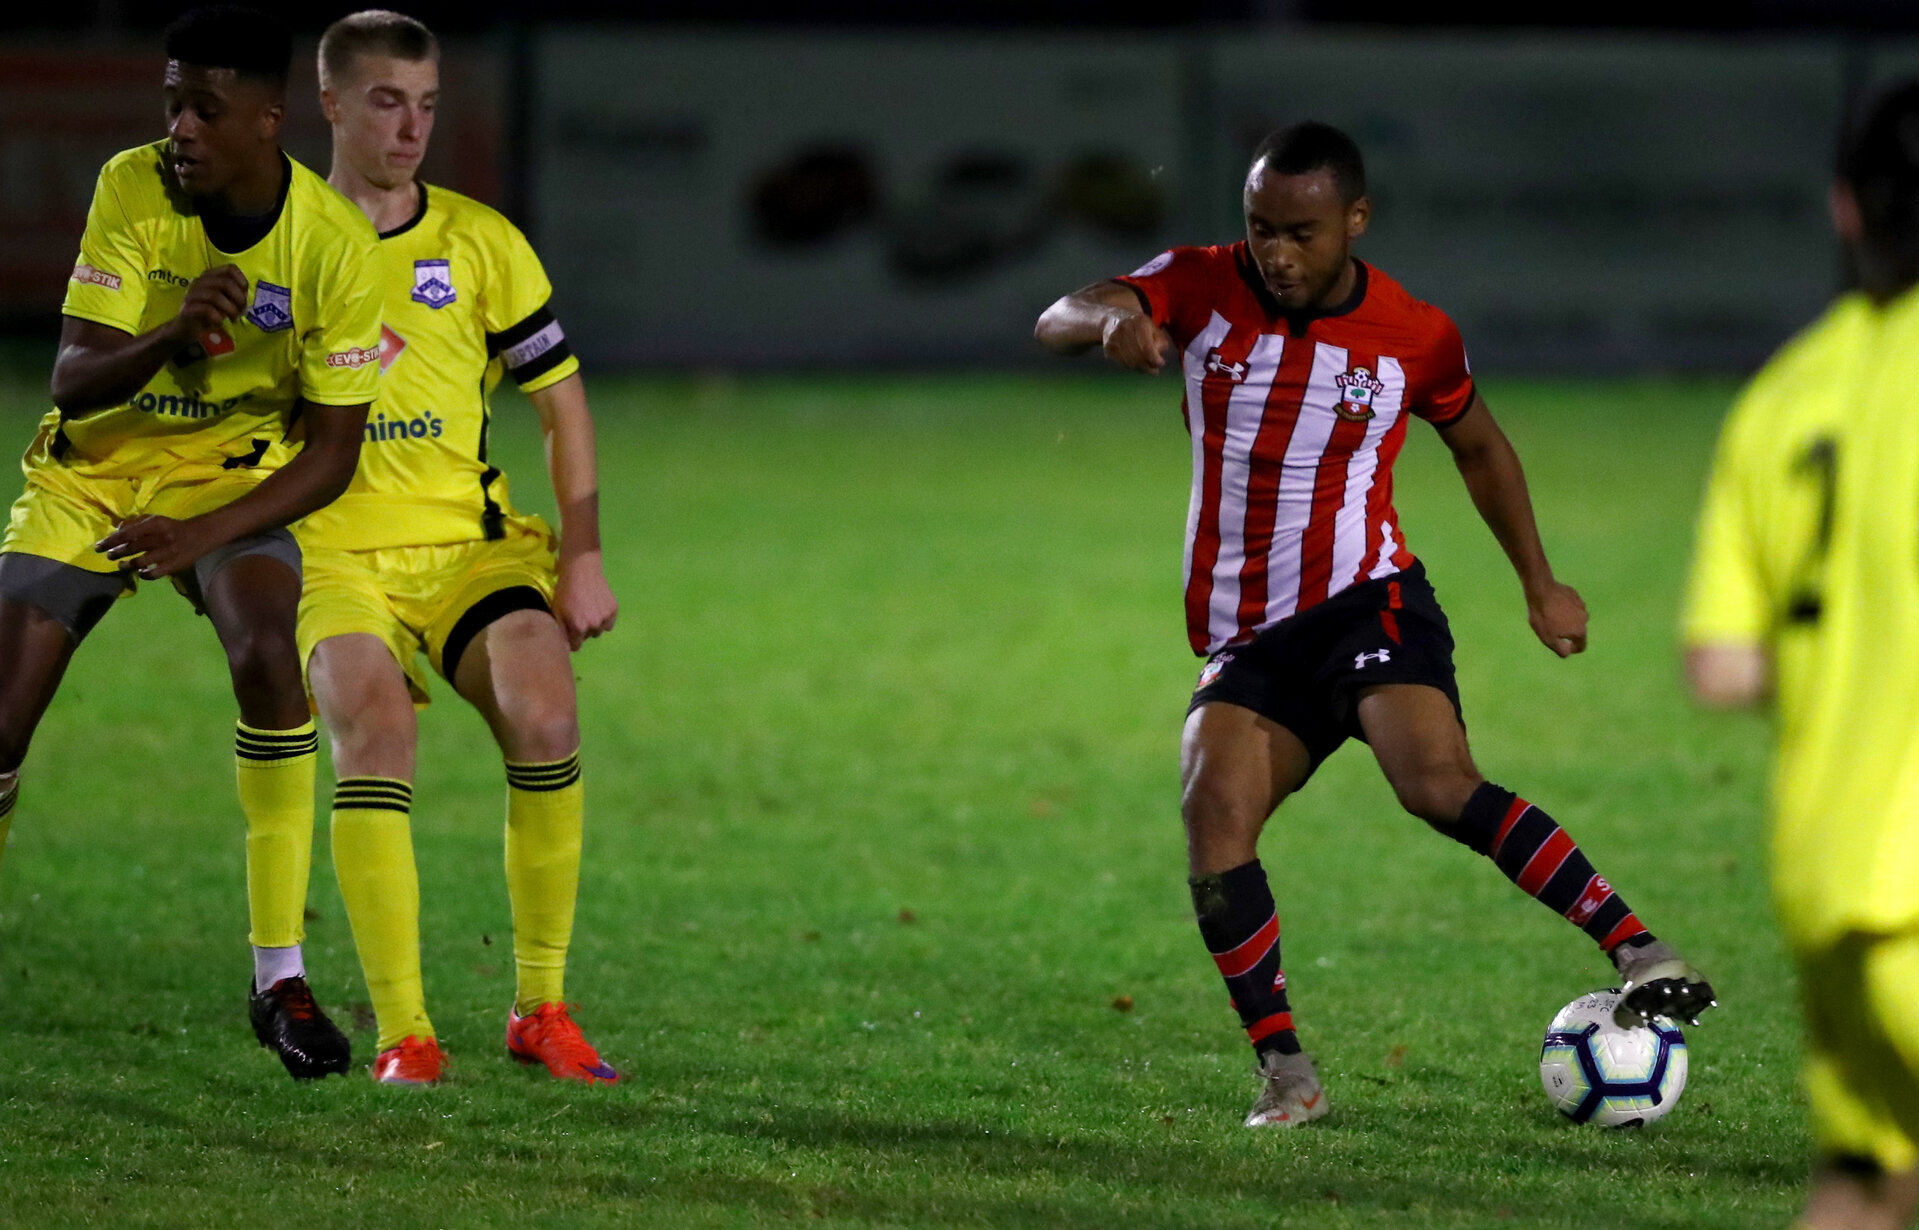 Tyreke Johnson of Southampton FC during the Hampshire Senior Cup match against Fleet Town FC, at the Testwood Stadium, Totton, Southampton, 3rd December 2018